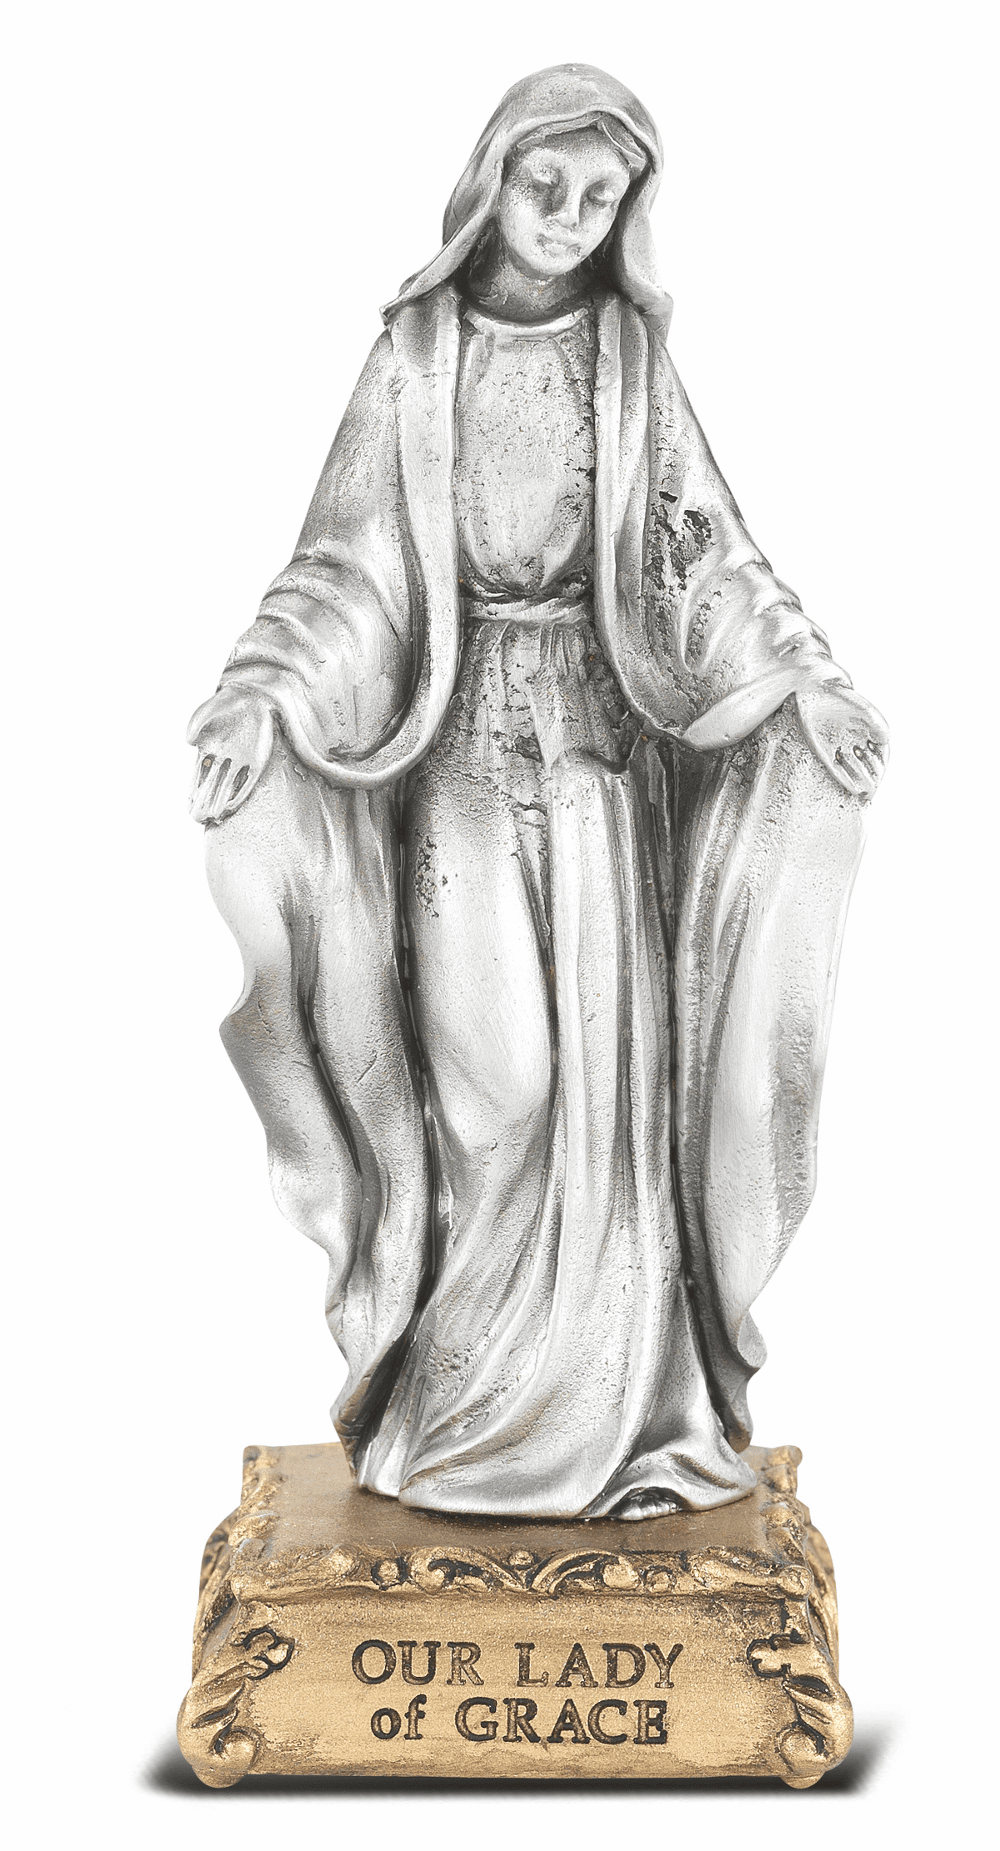 Our Lady of Grace Patron Saint Pewter Statue on Gold Tone Base by Hirten